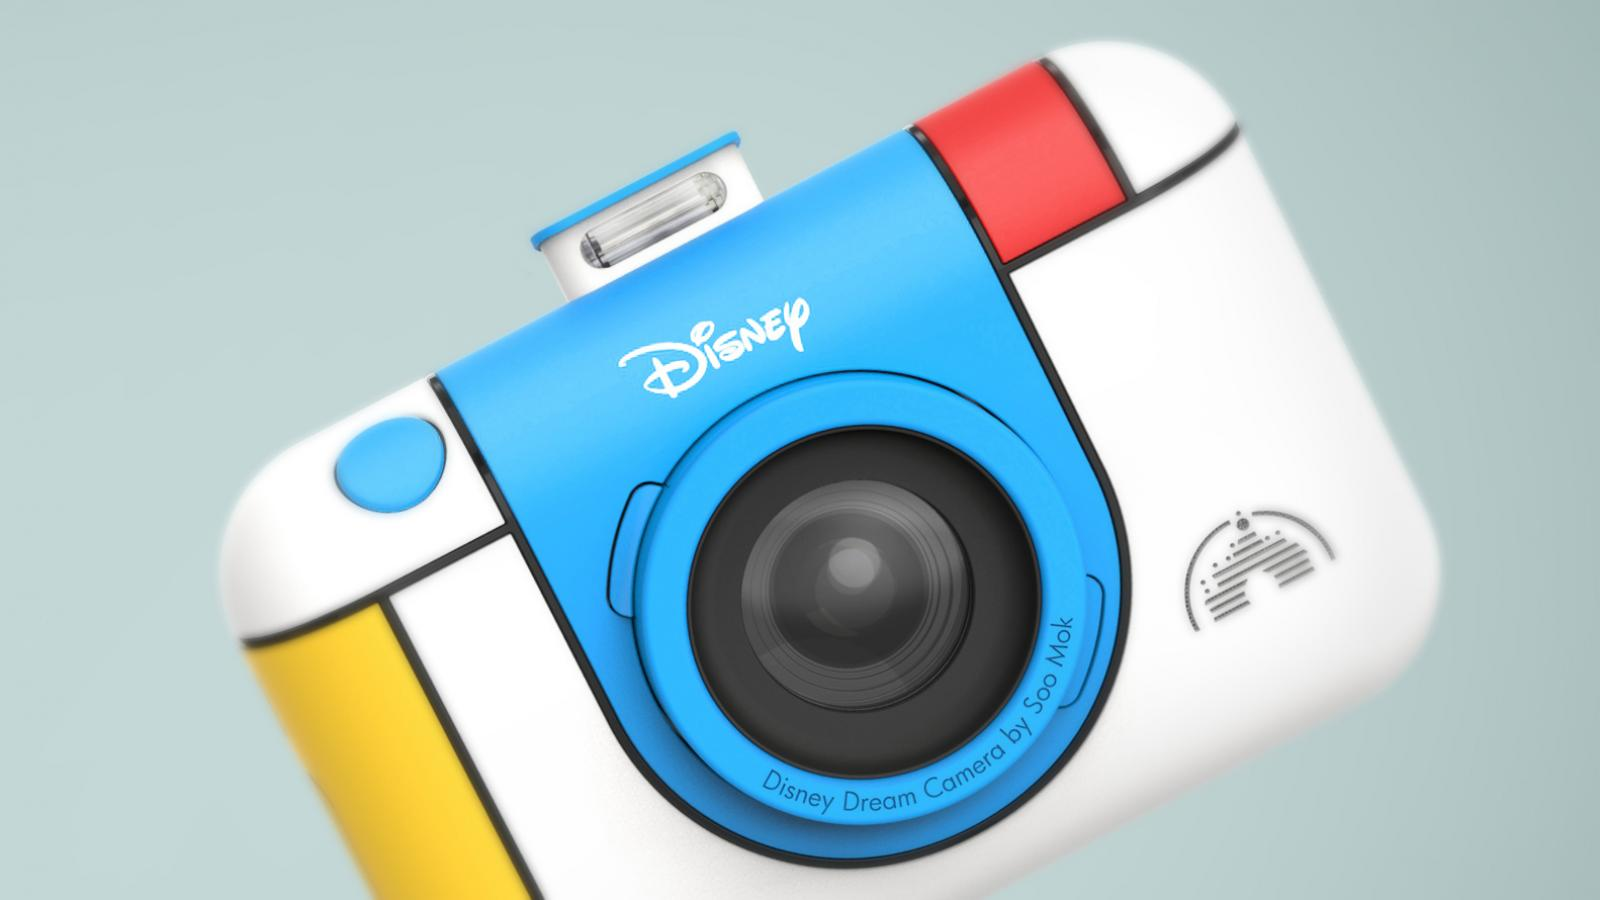 Industrial Design: Disney Camera Concept